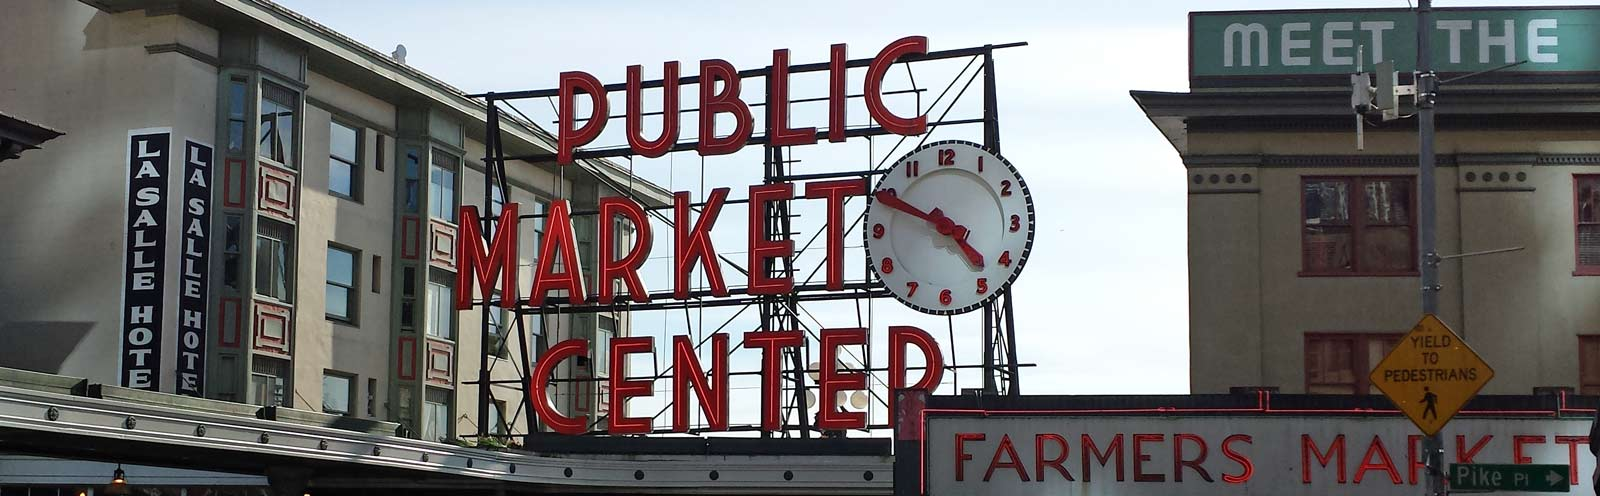 Guide to Seattle's Pike Place Market + Hotels Near Pike Place Market